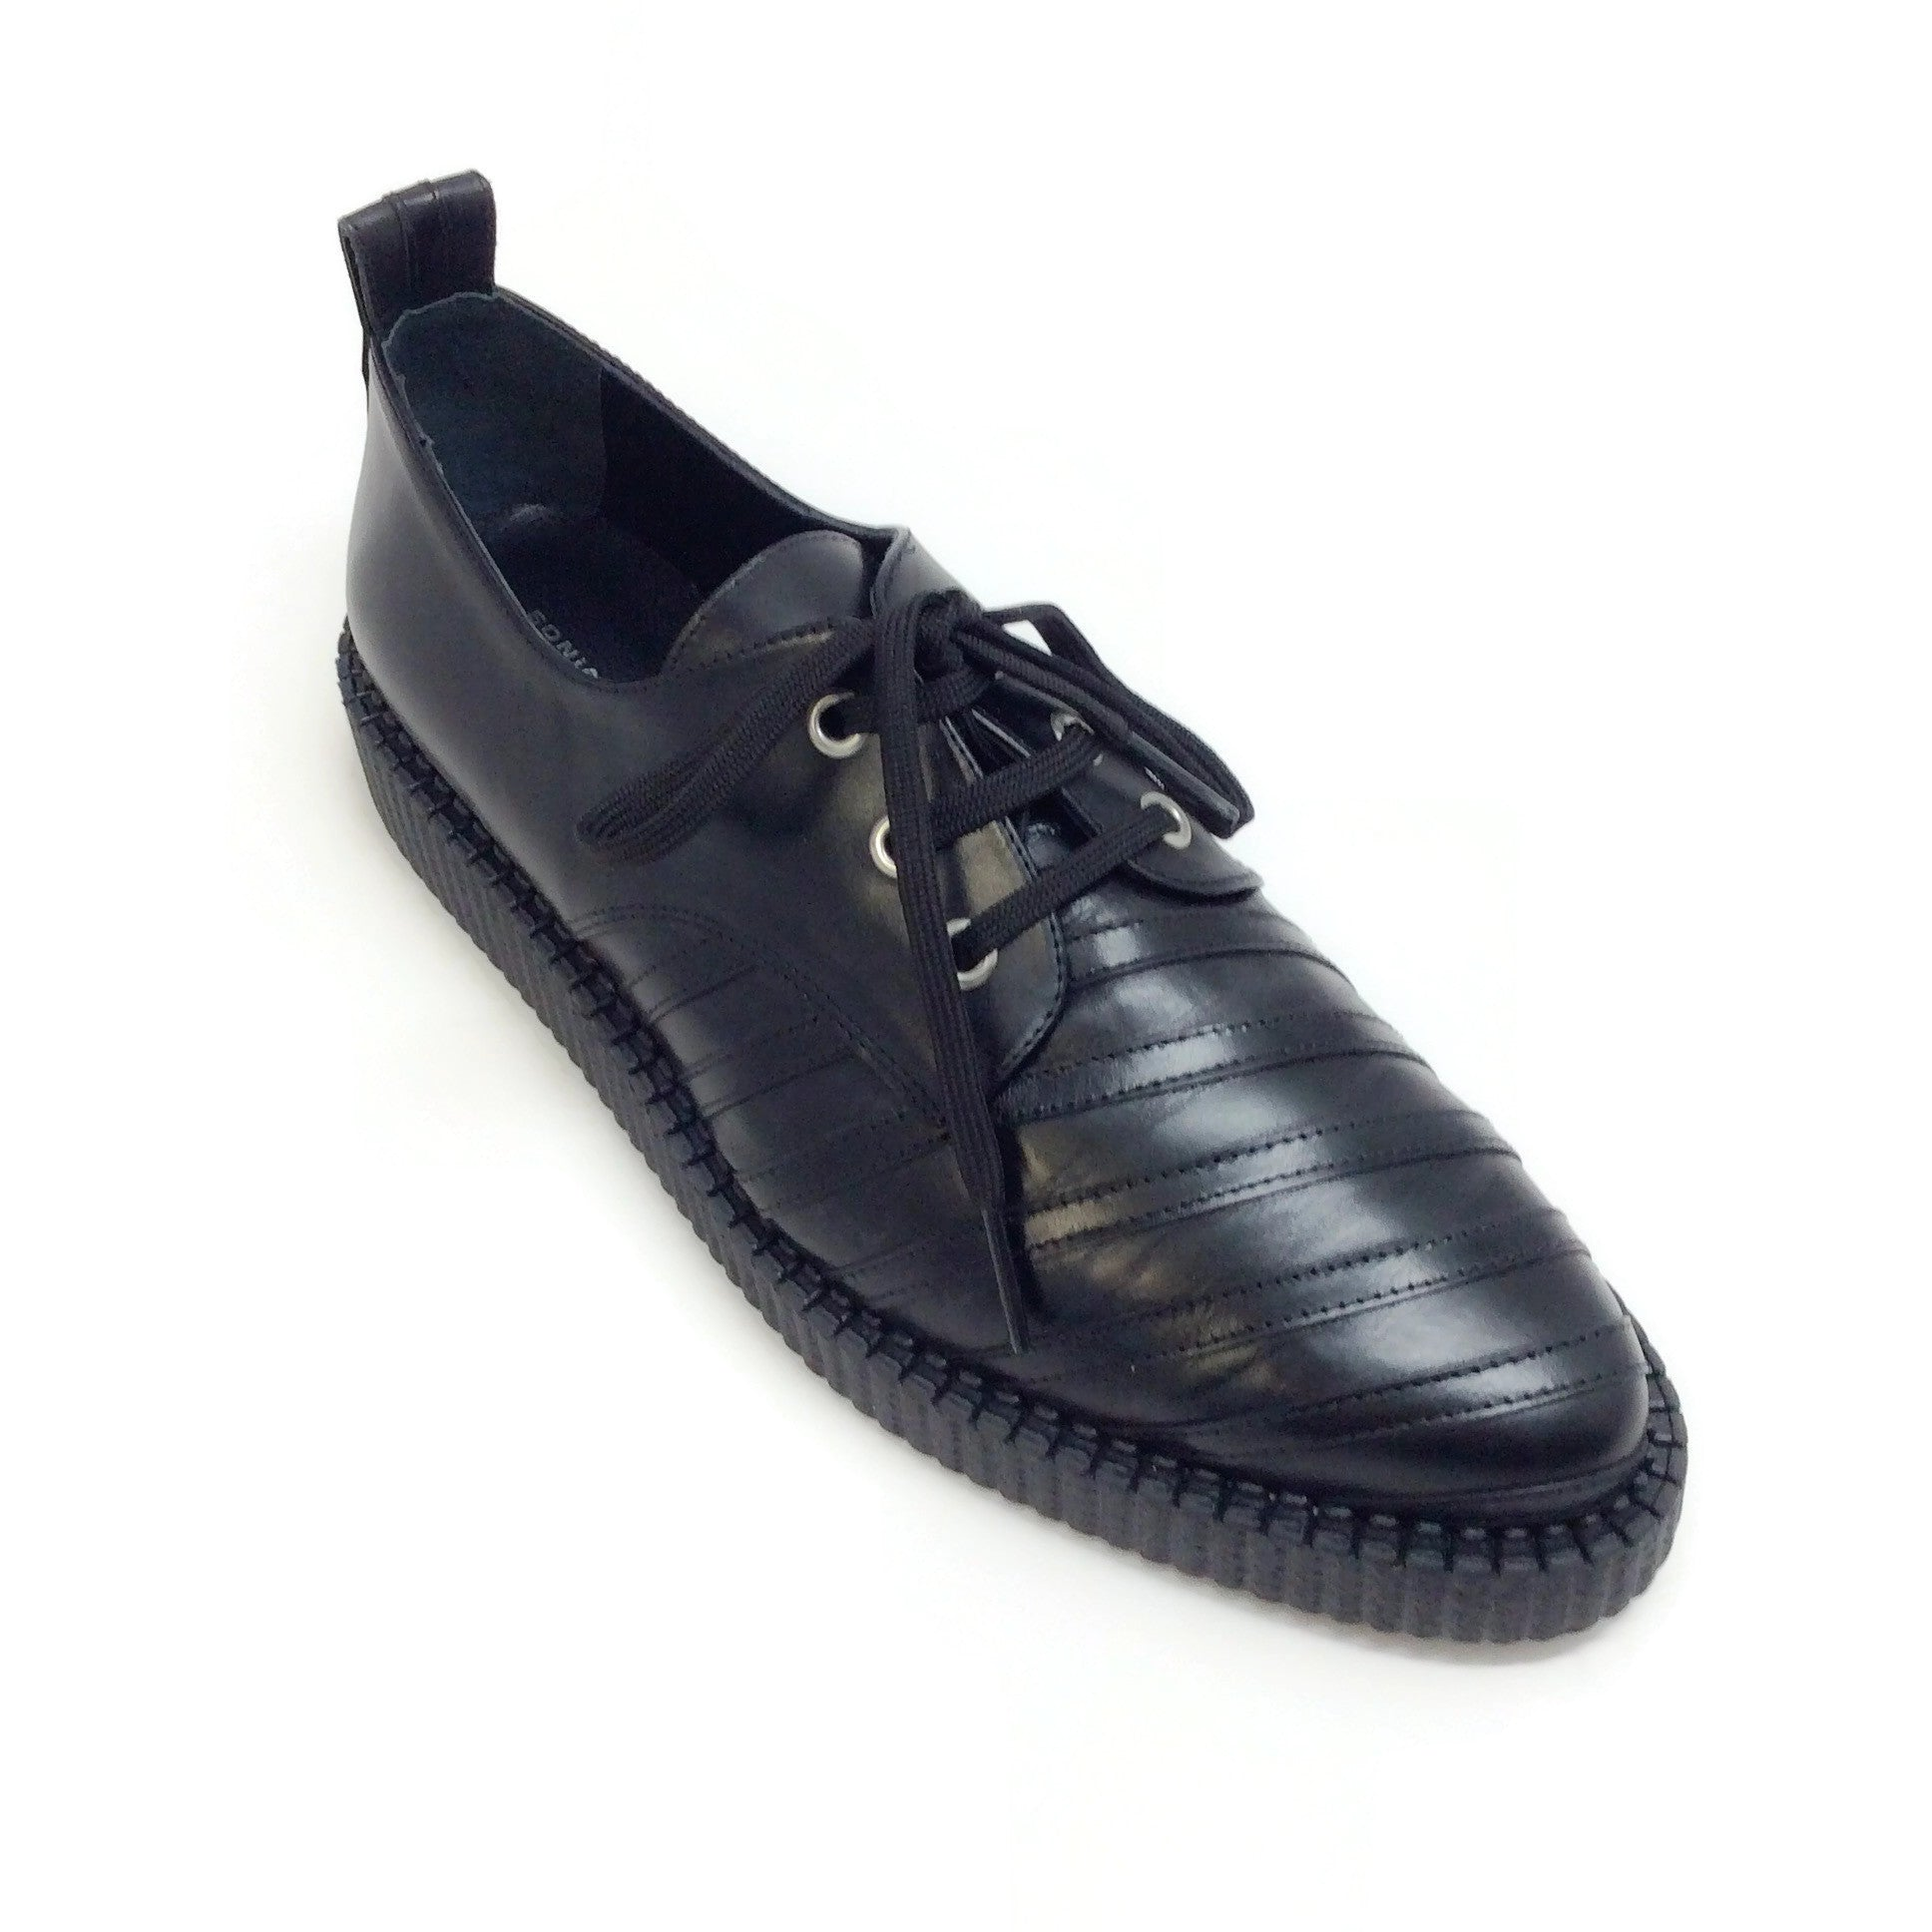 Sonia Rykiel Black Stripe Detail Oxfords